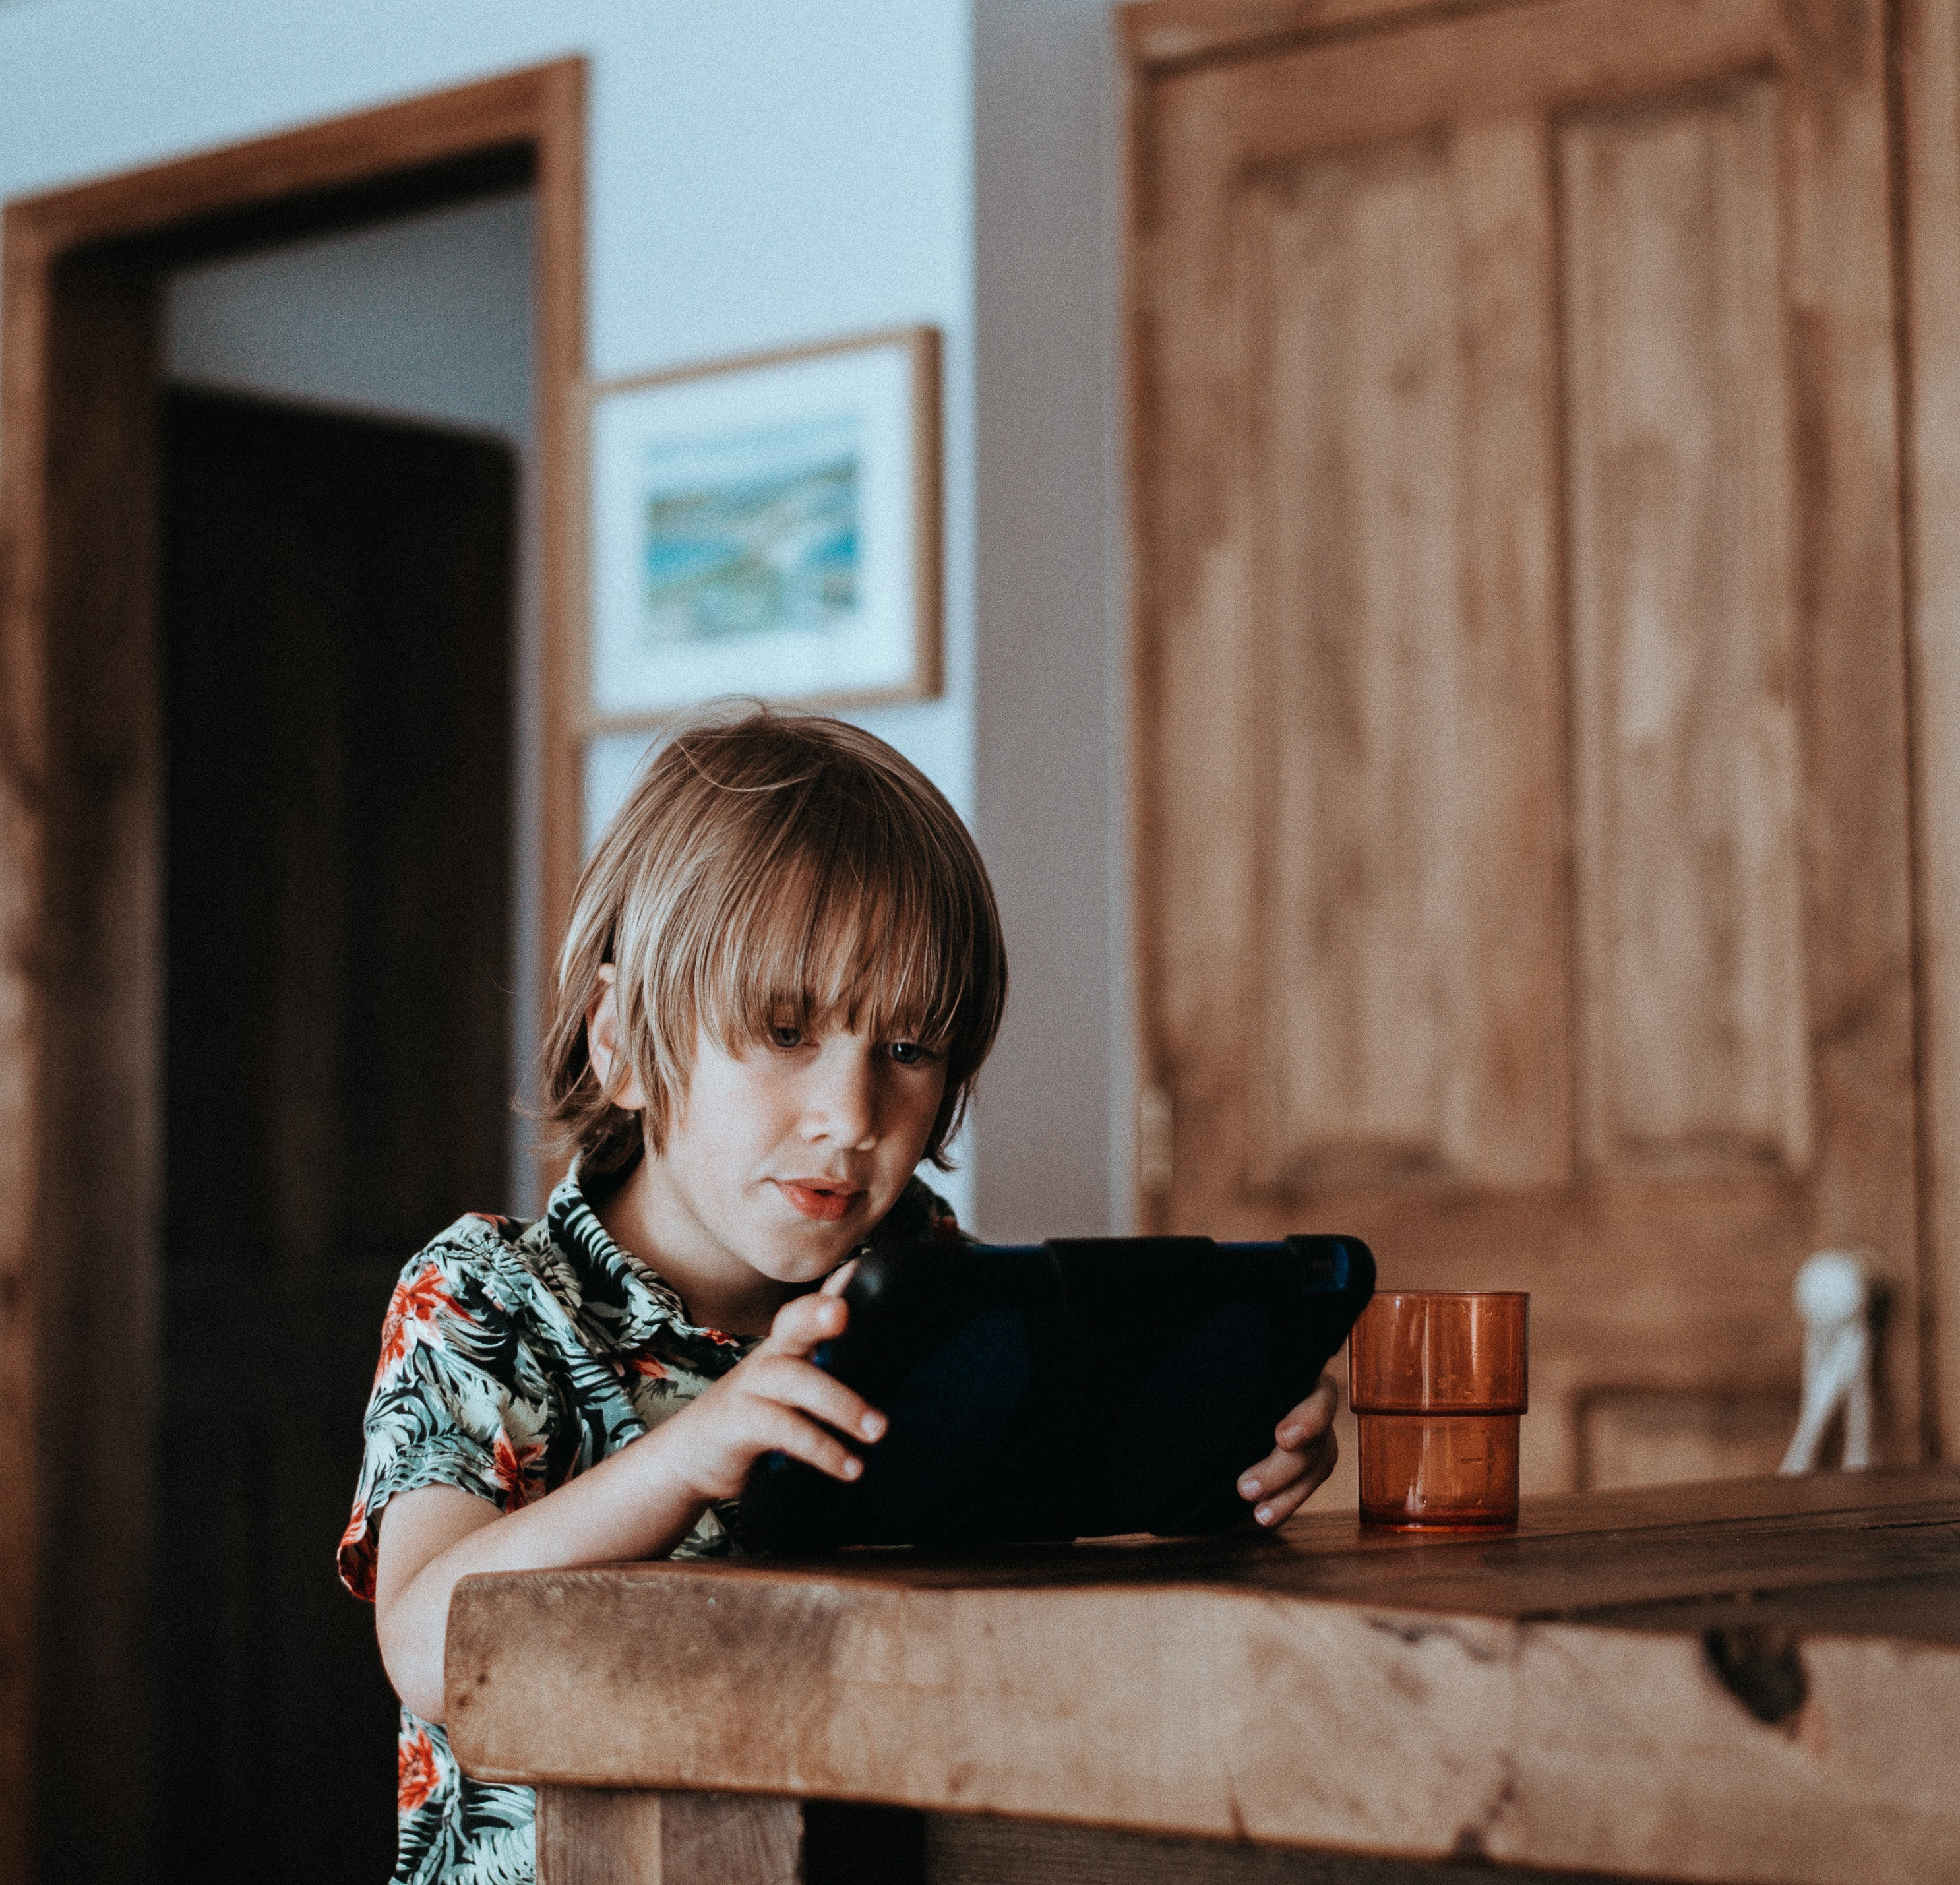 A child sits at a wood table in a house, using a digital tablet